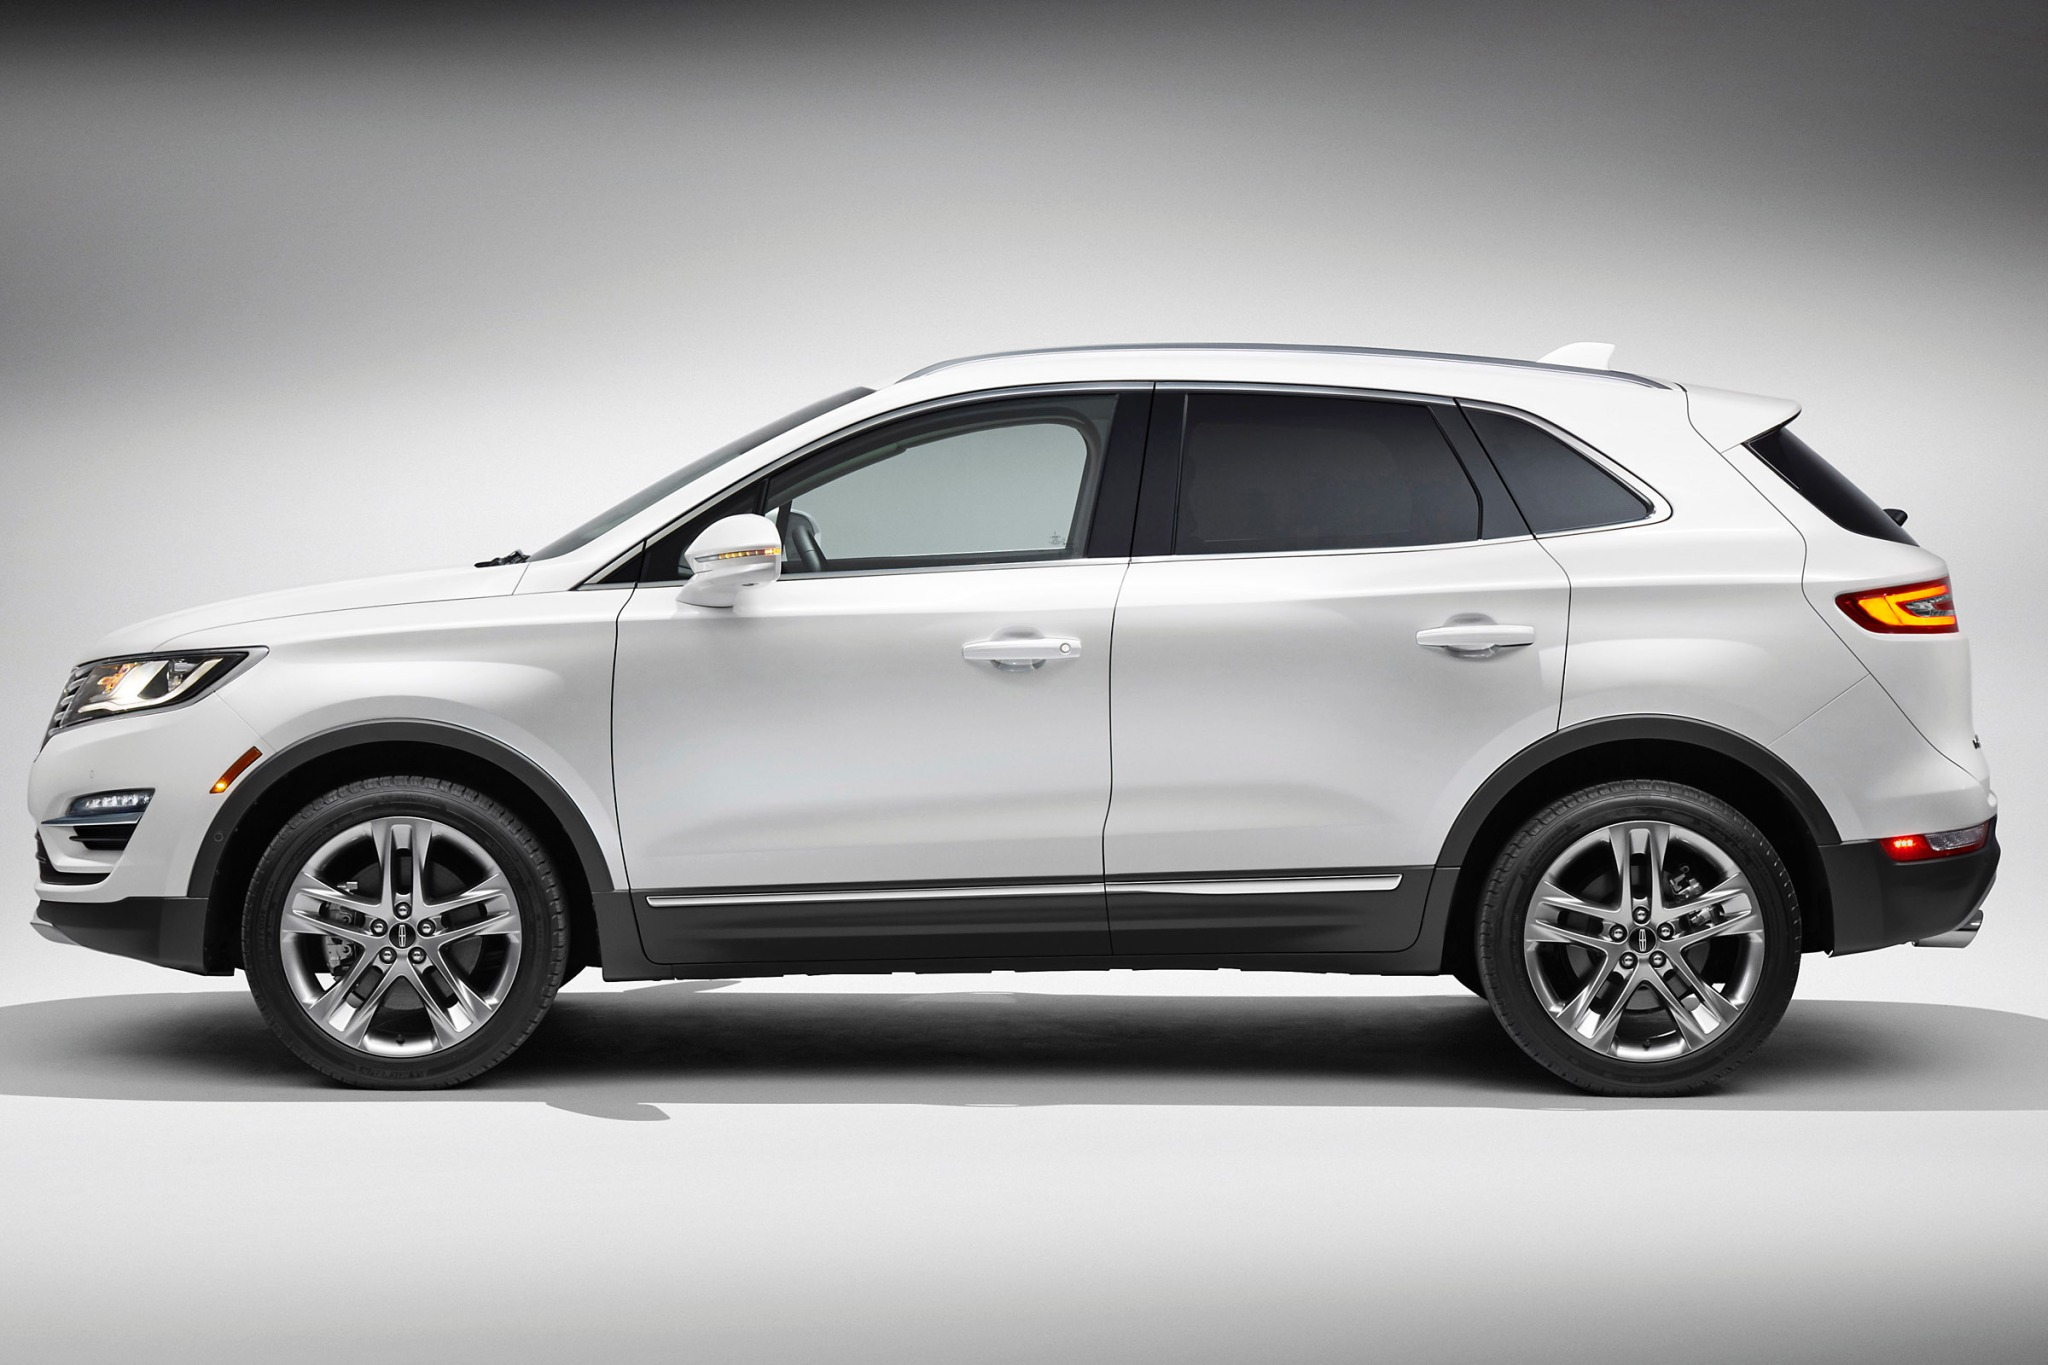 2015 Lincoln MKC 4dr SUV  exterior #5